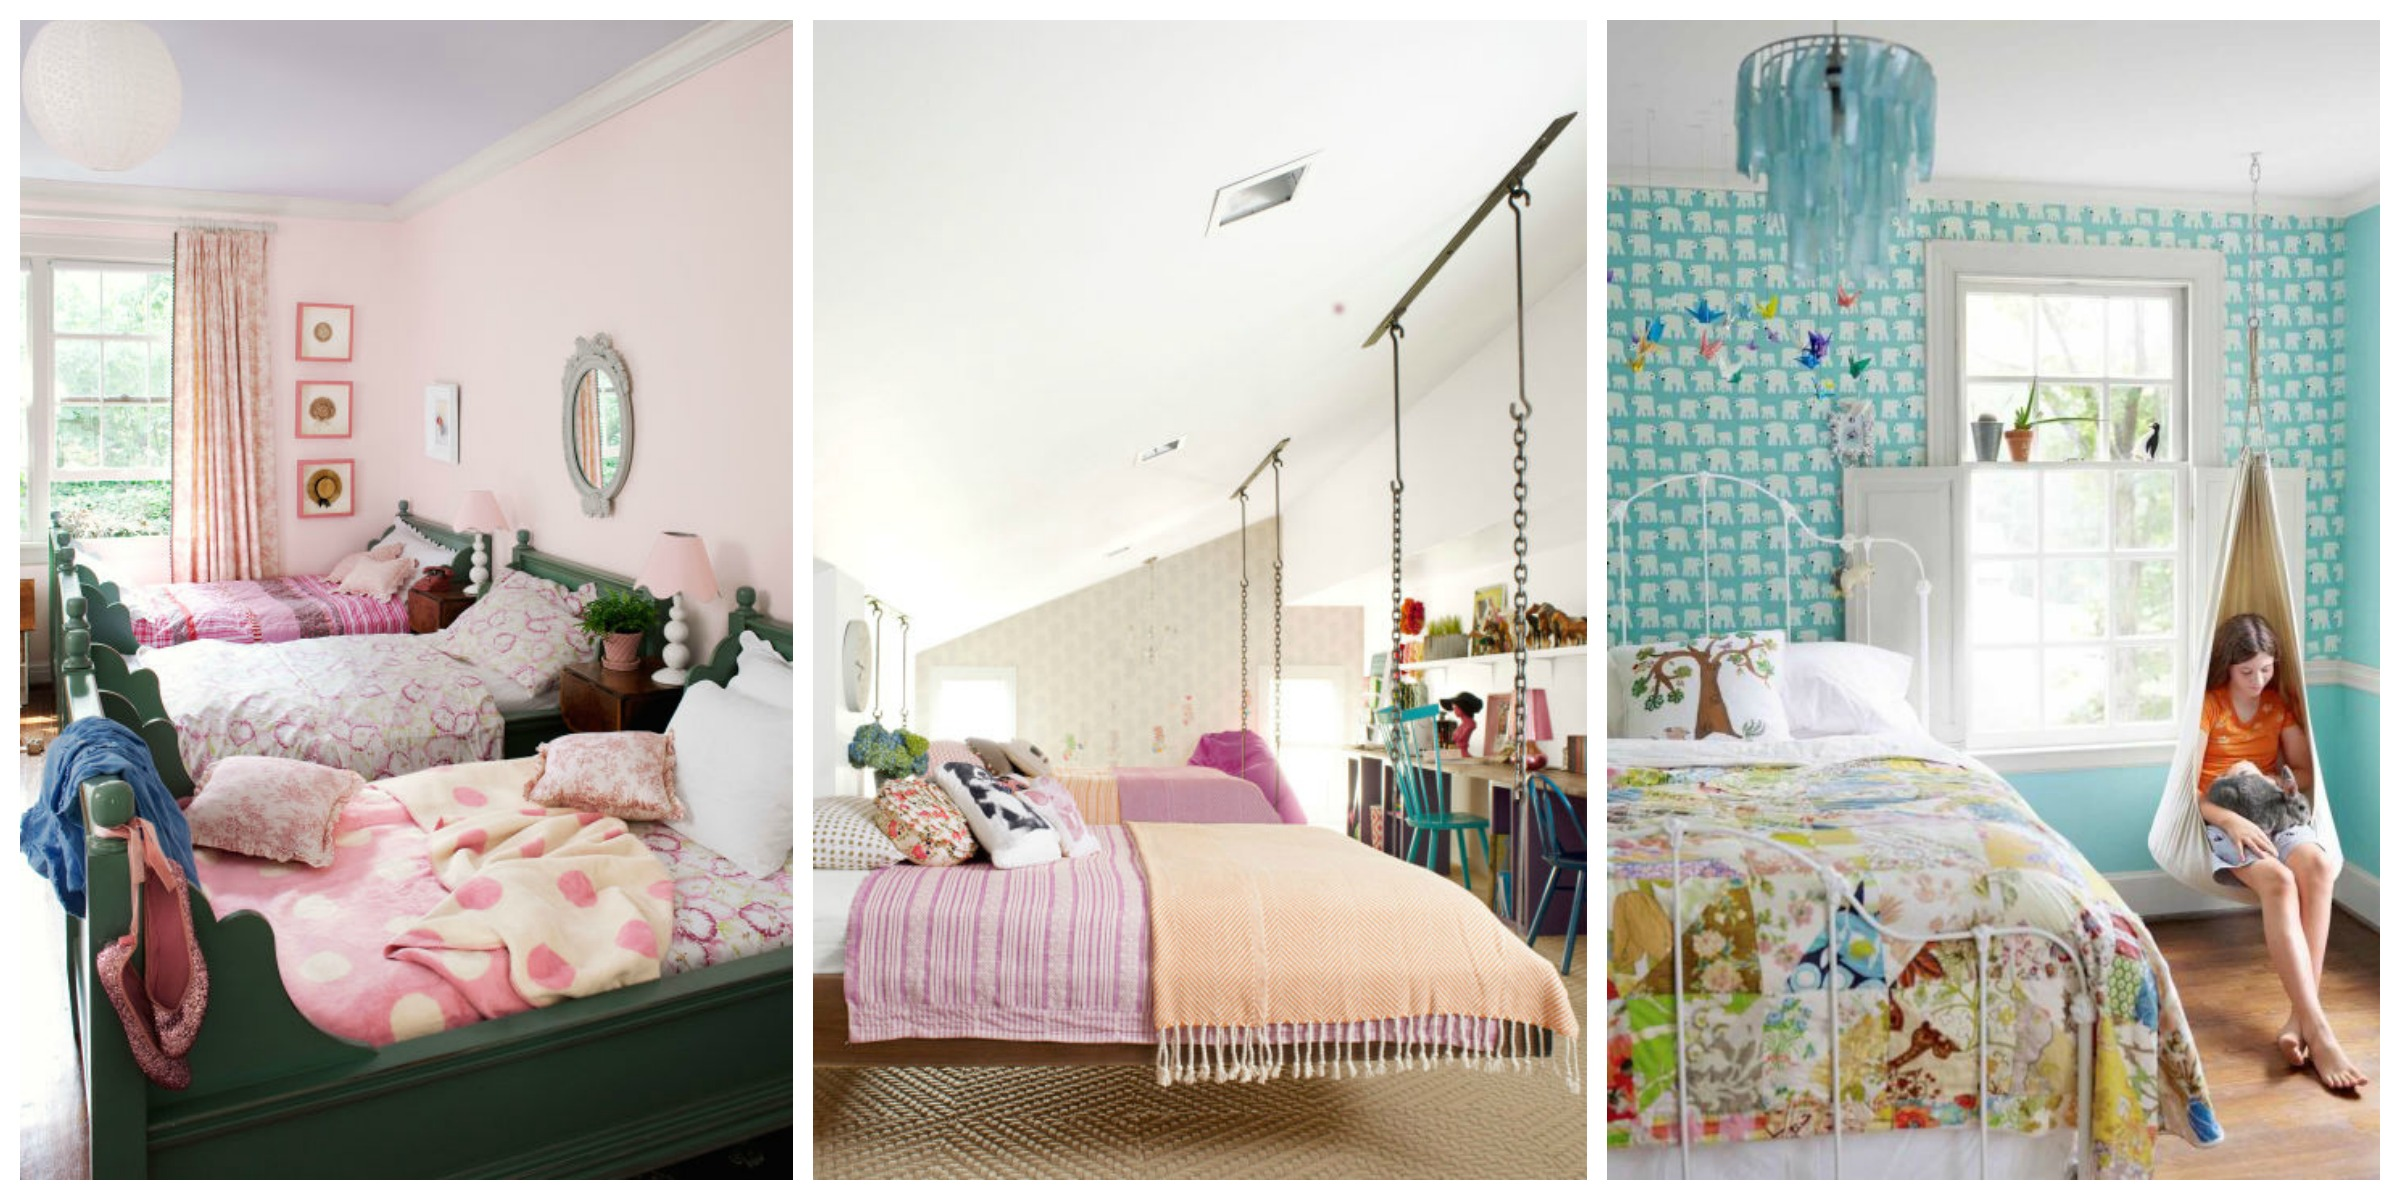 12 Fun Girl's Bedroom Decor Ideas - Cute Room Decorating ... on Room Decorations For Girls  id=21786